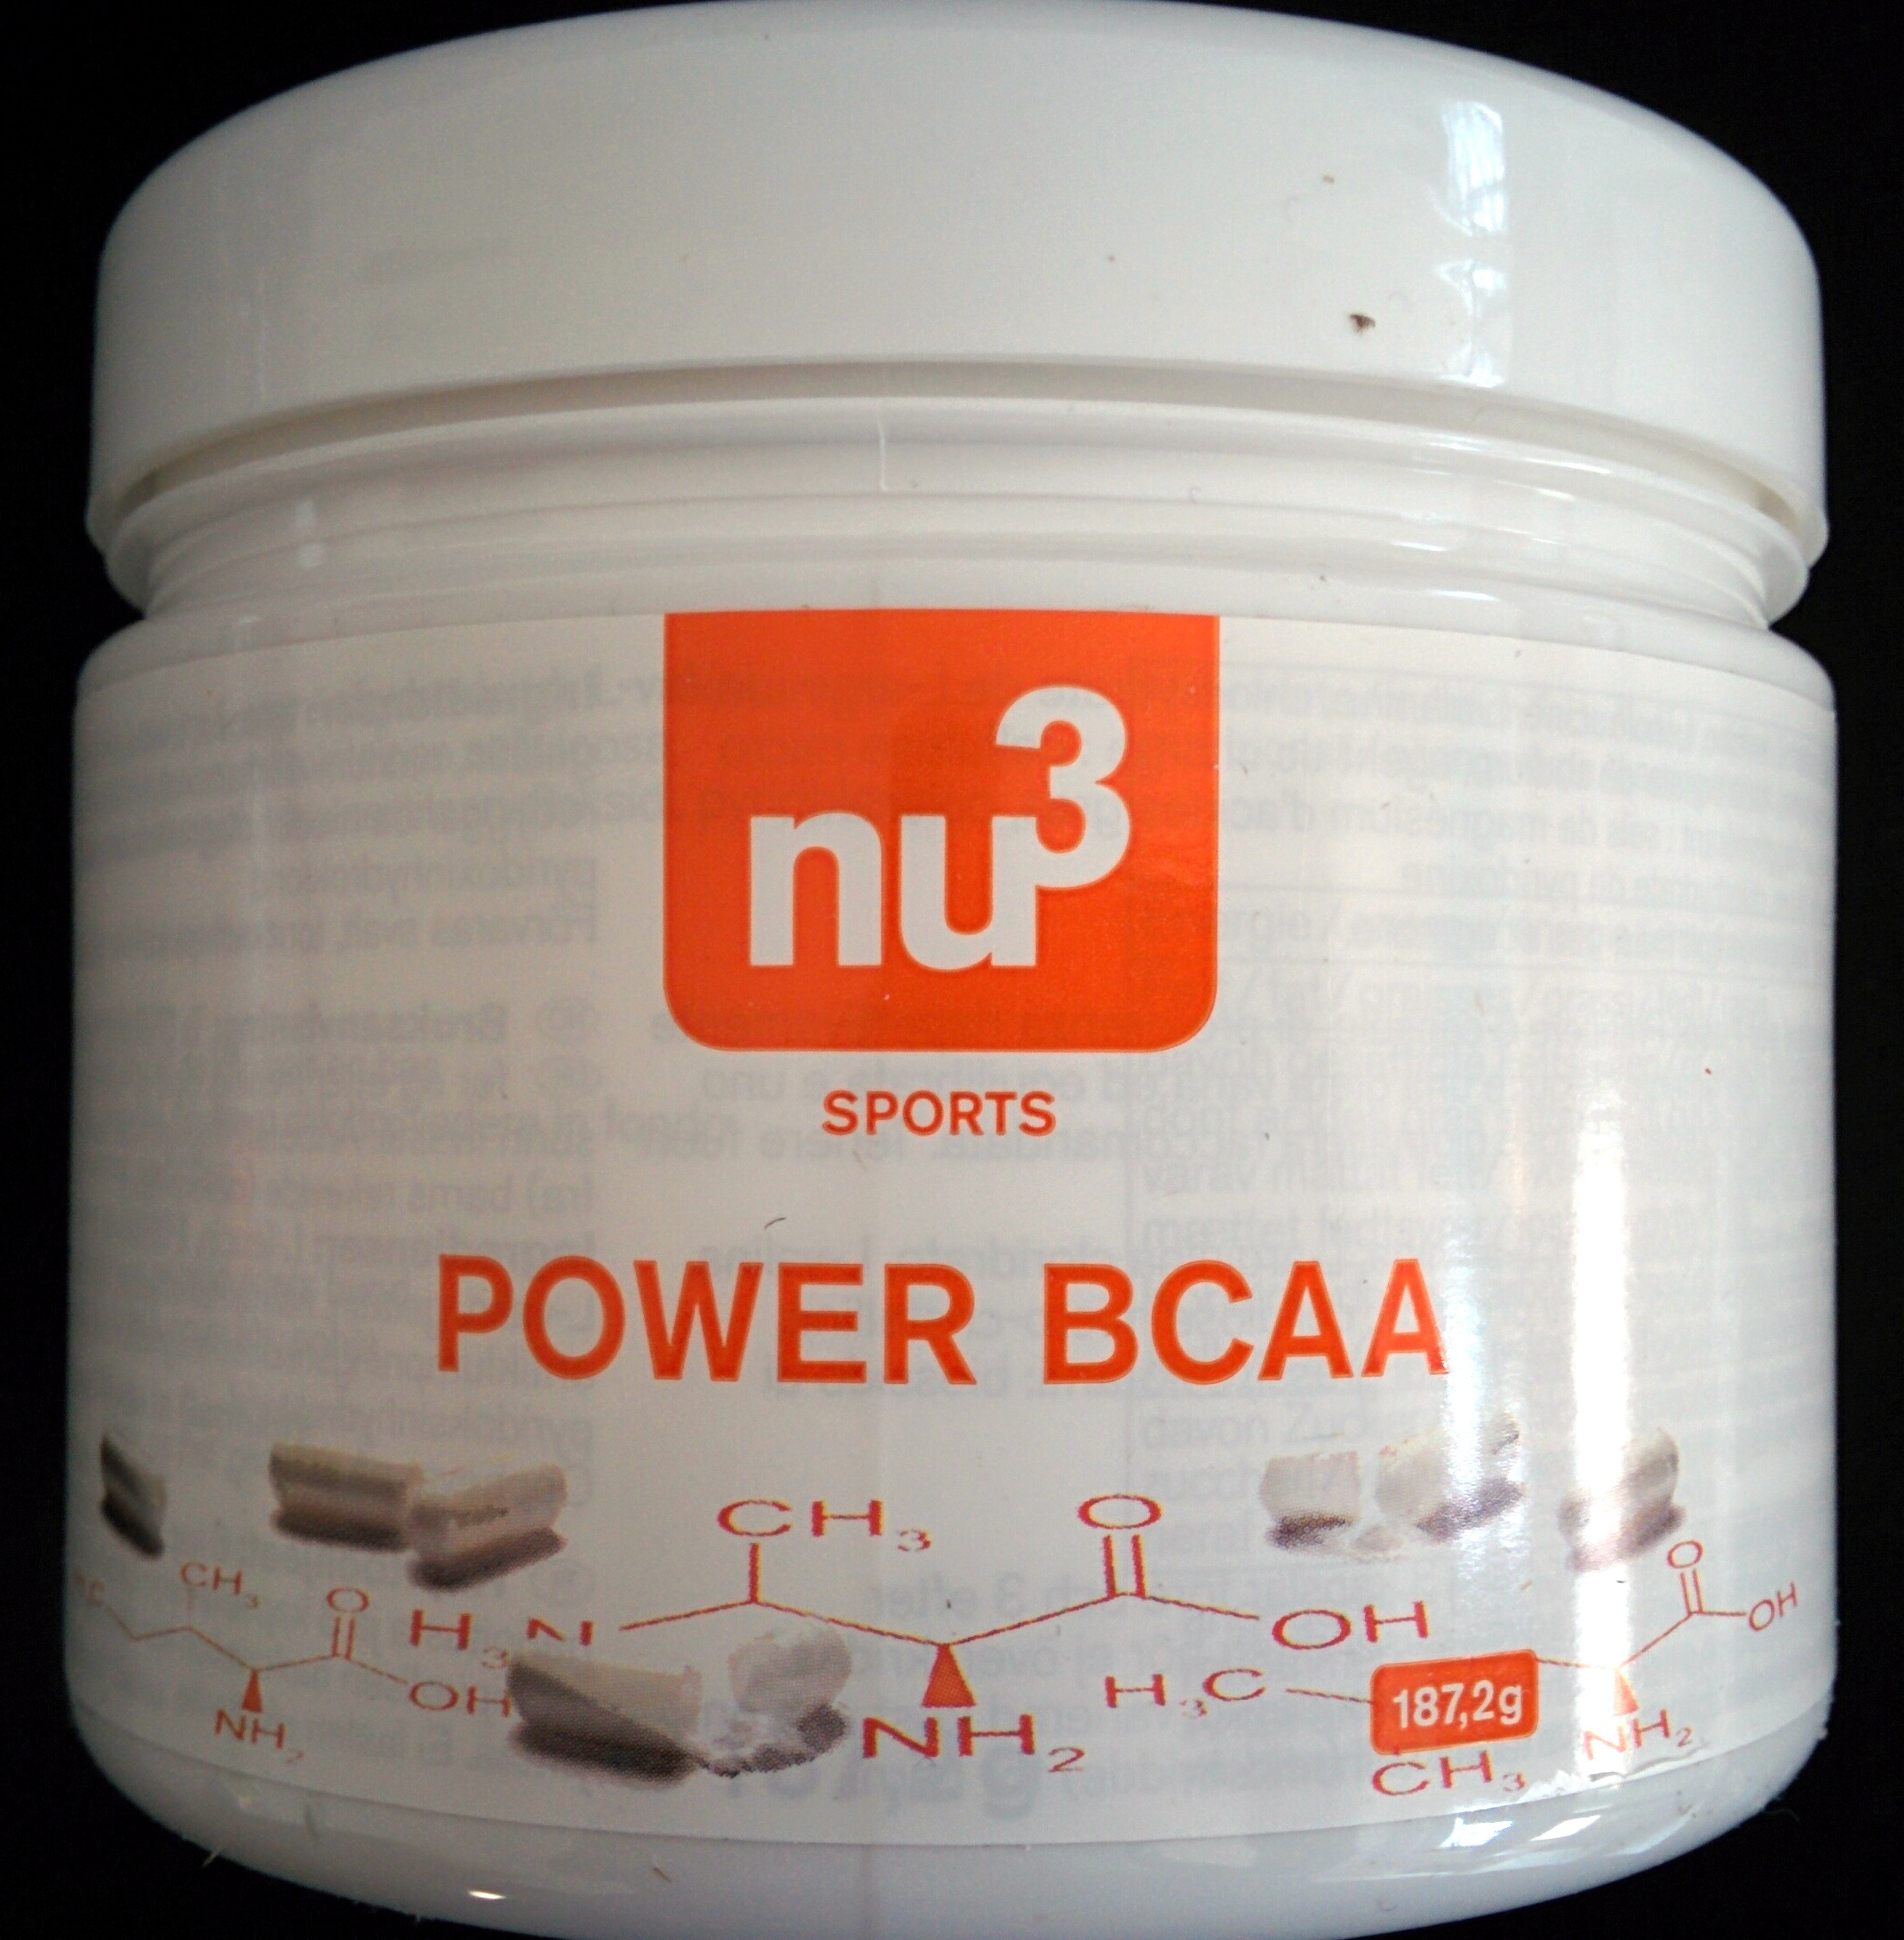 Power BCAA - Product